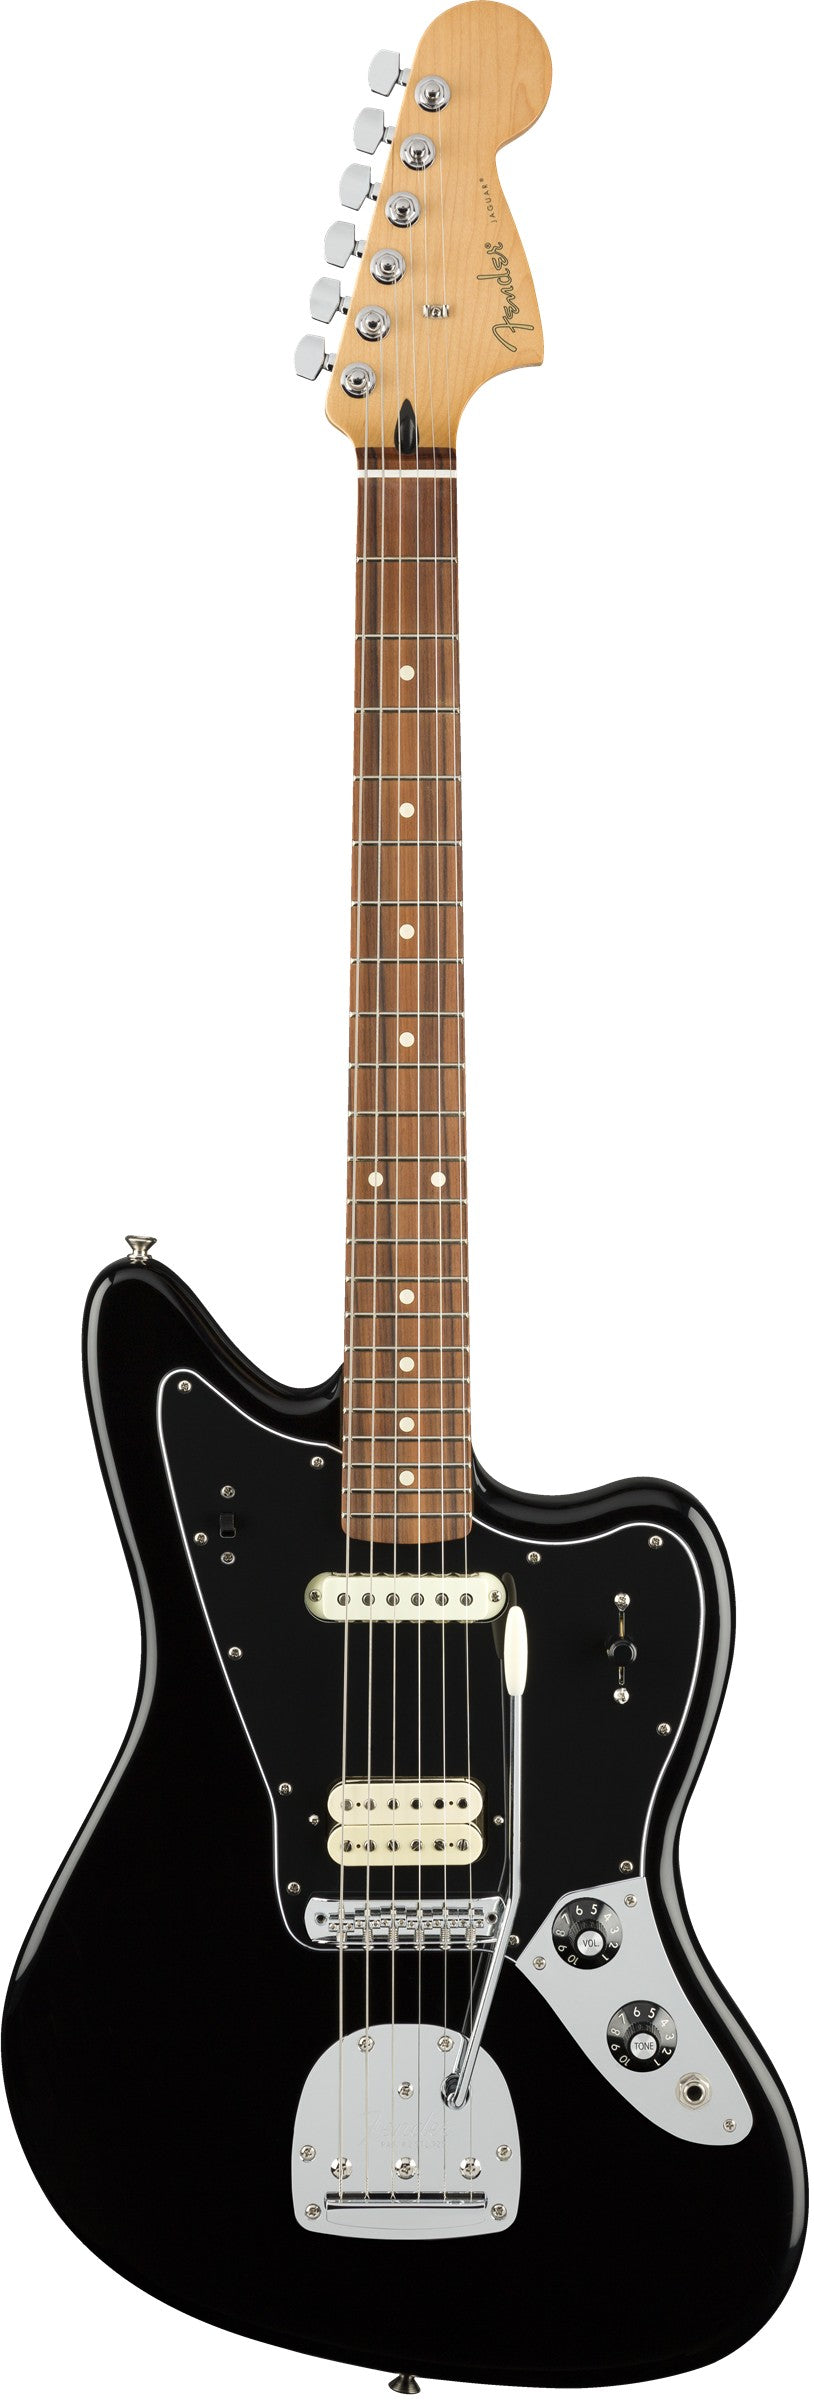 Fender Player Jaguar Electric Guitar, Pau Ferro Fingerboard